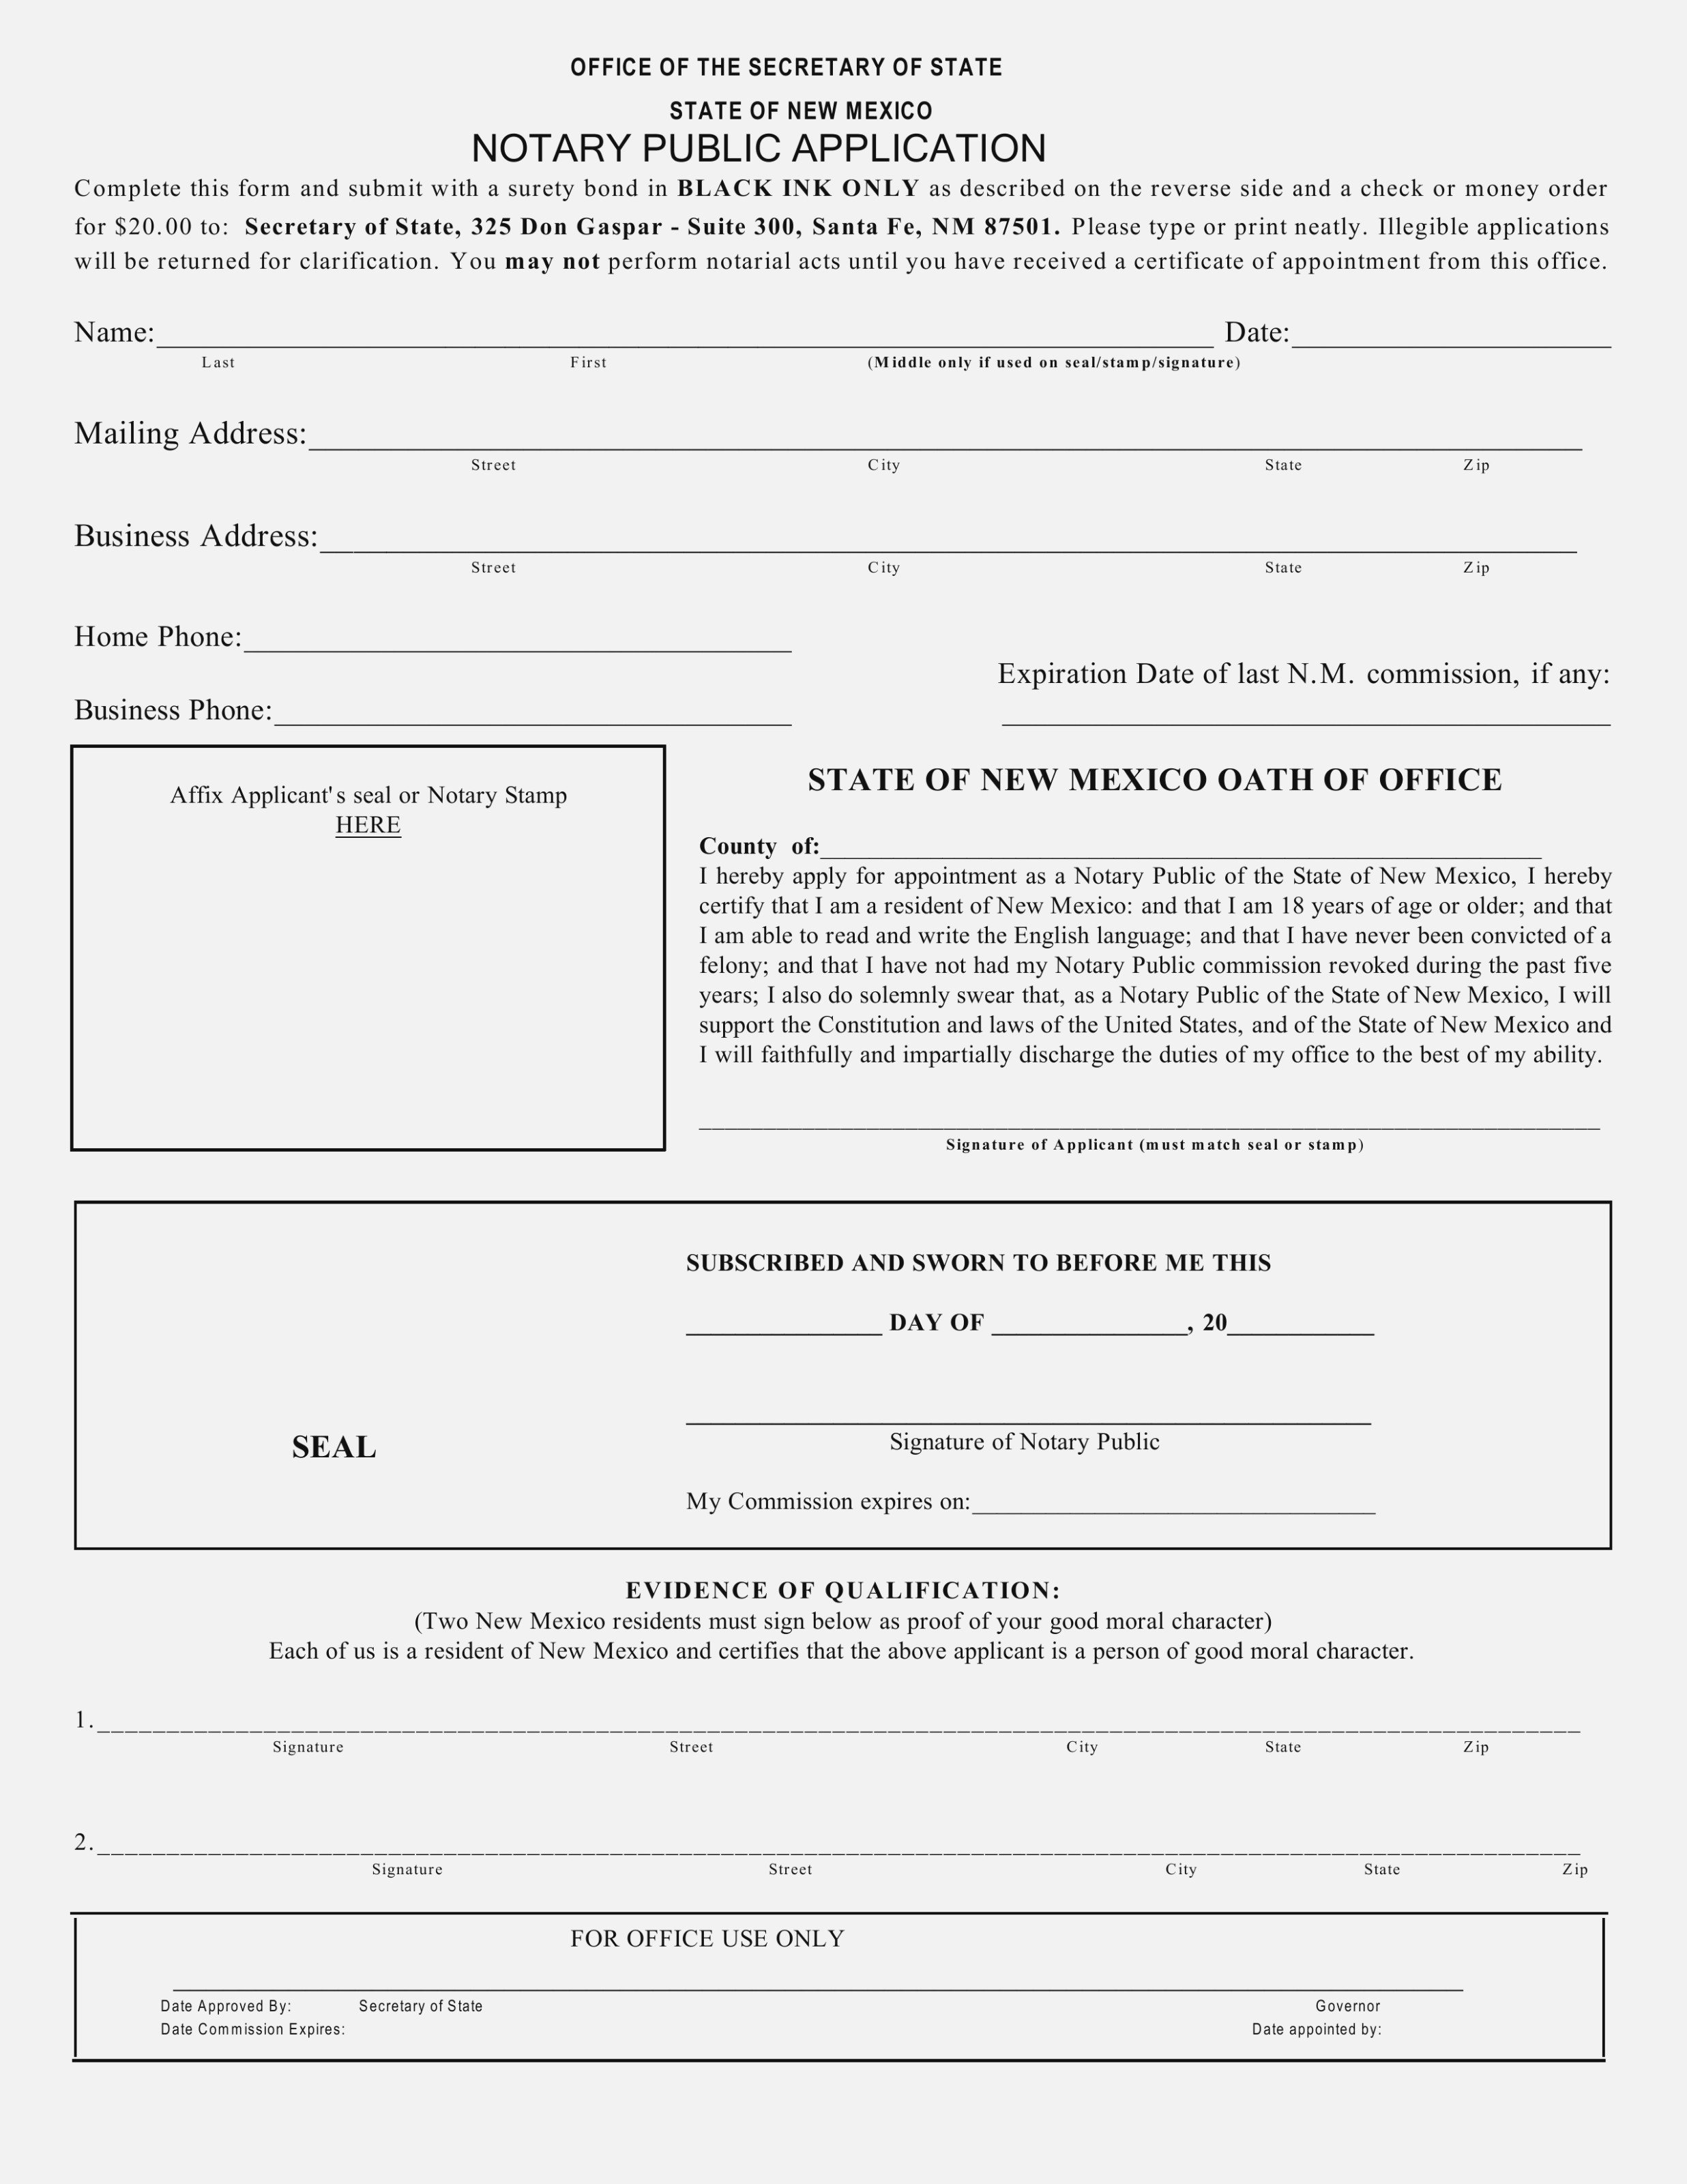 Notary Public Application Form Online 2018